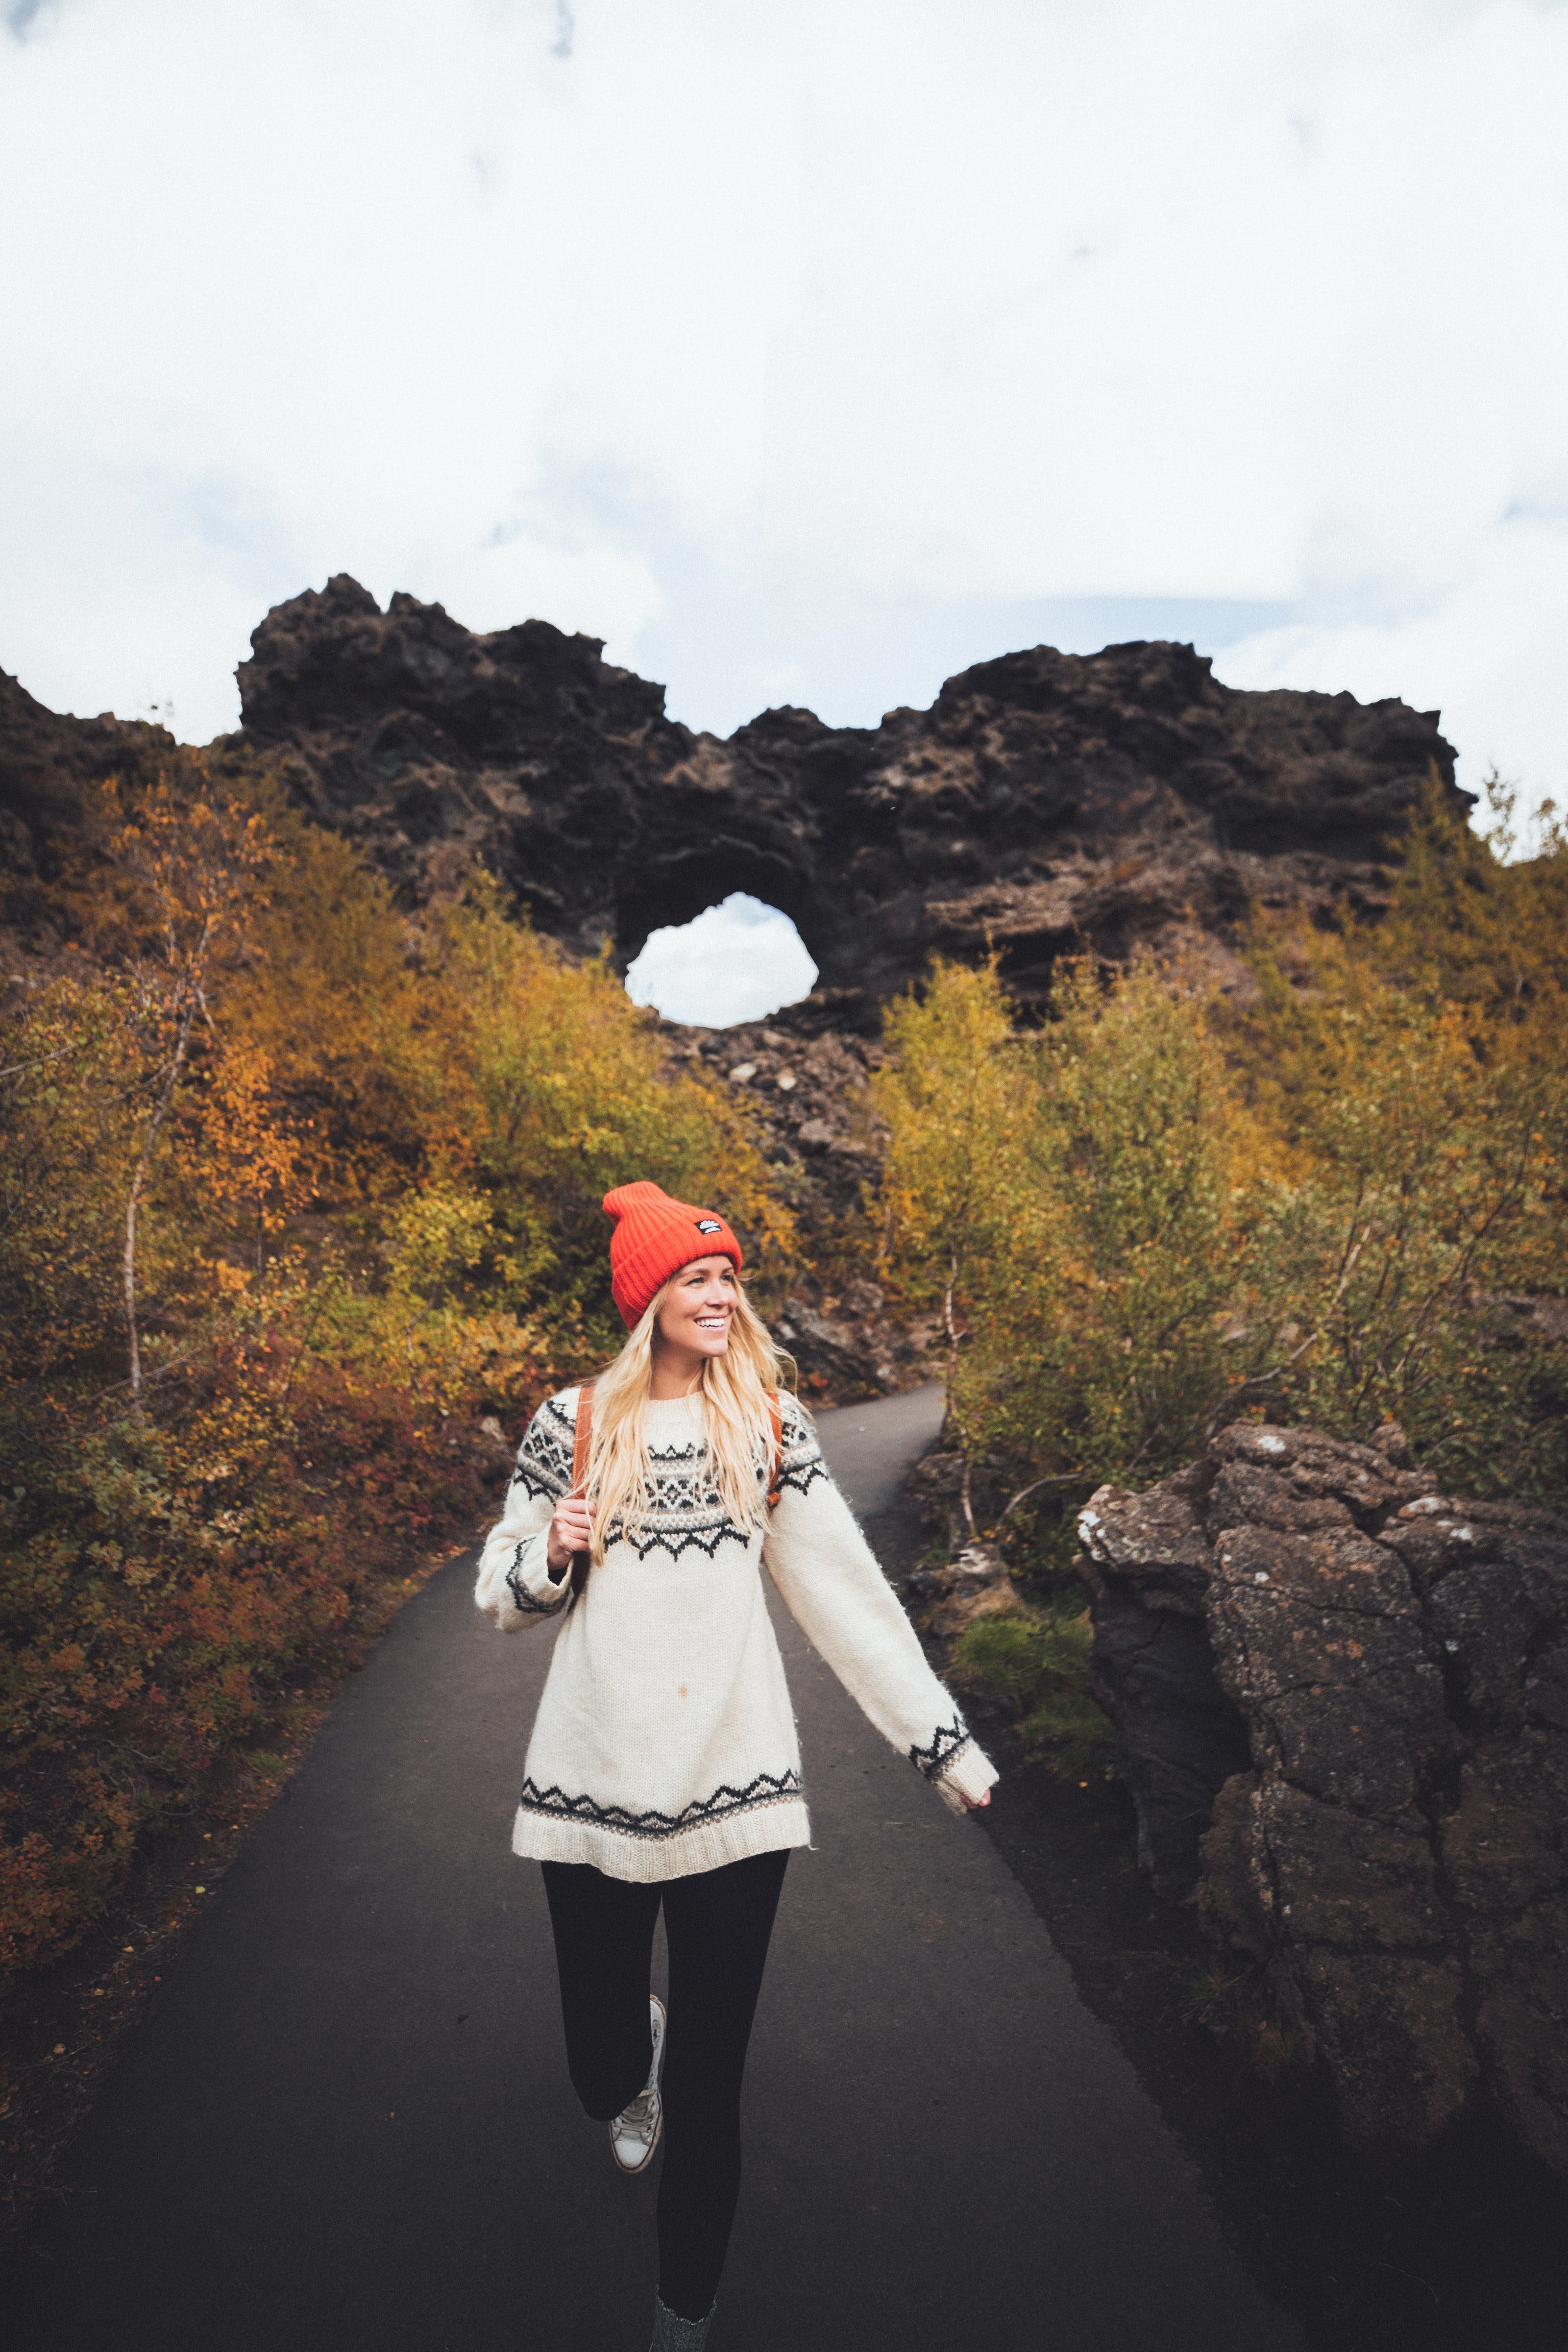 Berry picking in North Iceland